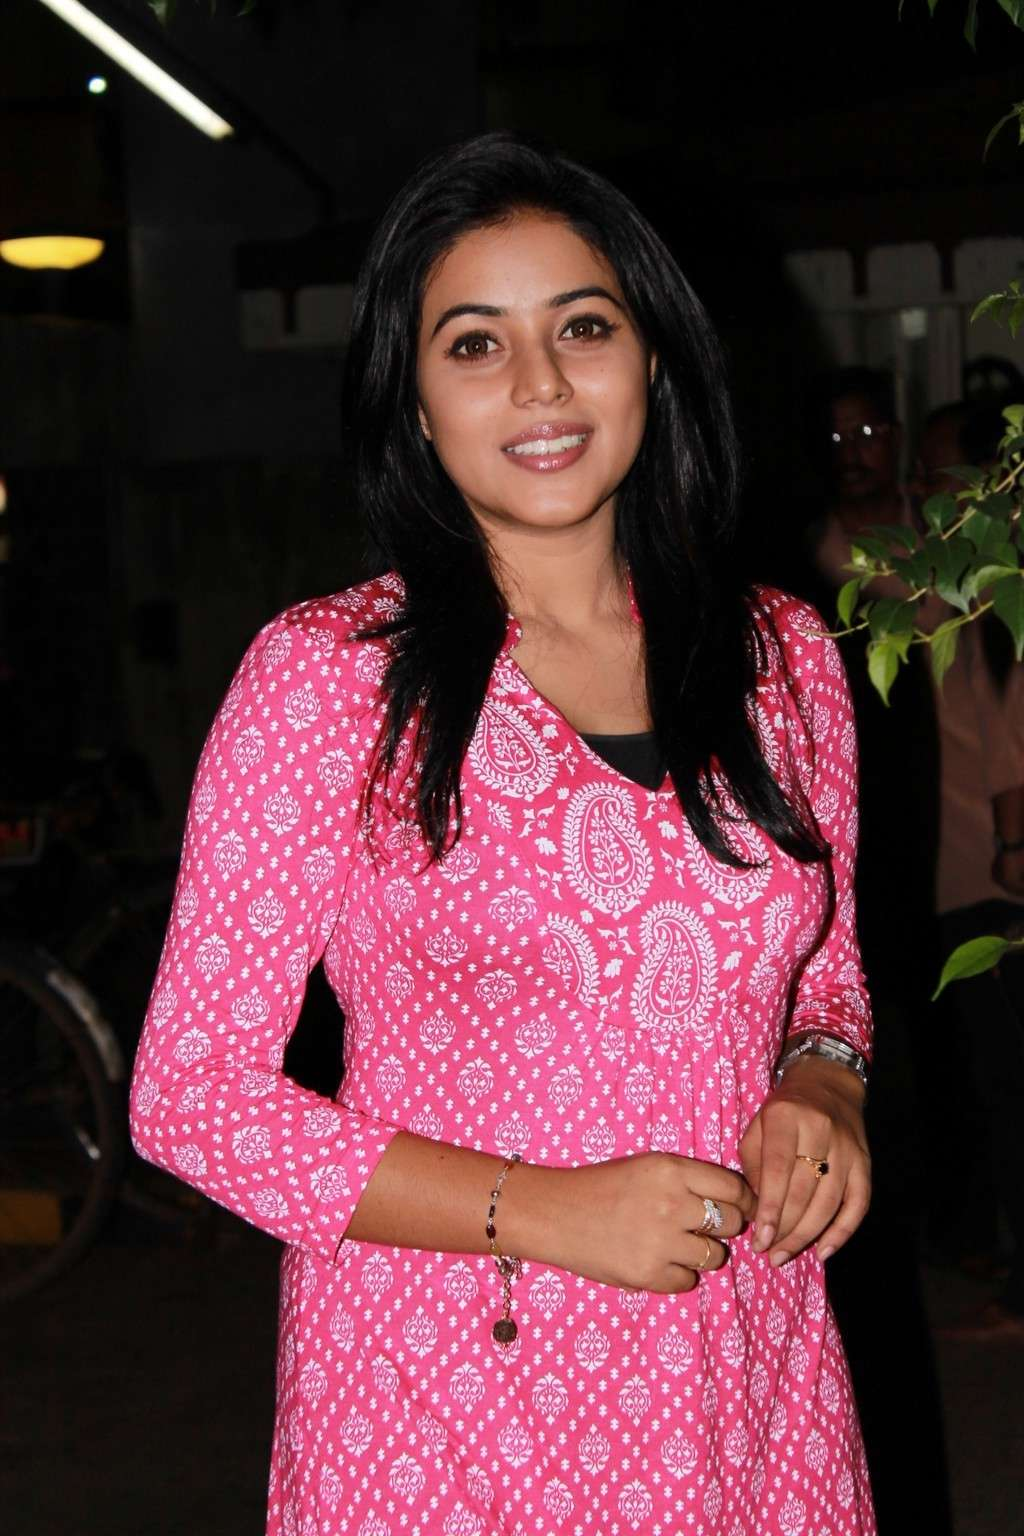 Poorna Bright in Pink Top Poorna25